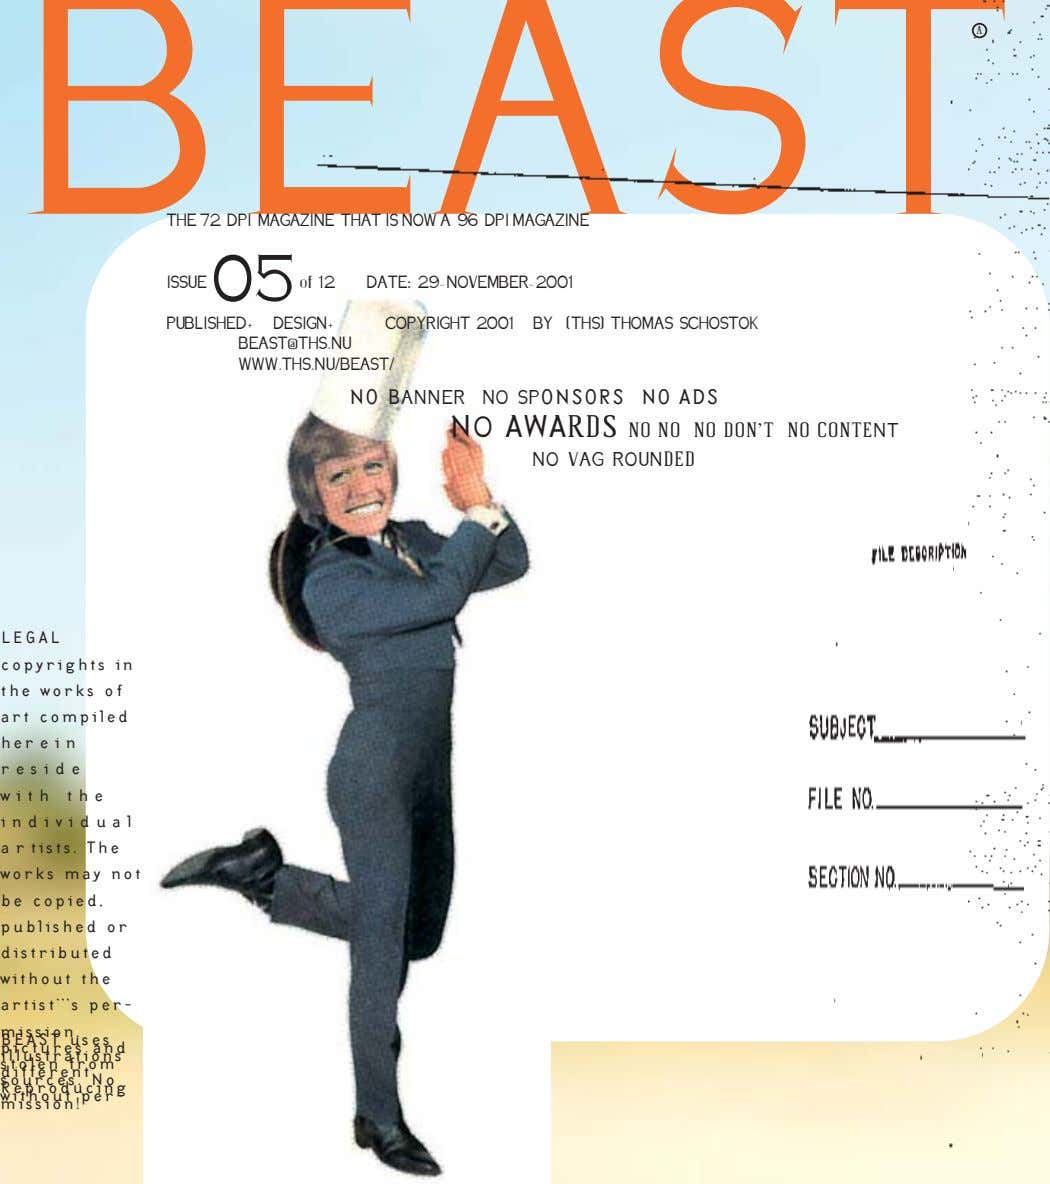 BEAST A THE 72 DPI MAGAZINE THAT IS NOW A 96 DPI MAGAZINE ISSUE 05